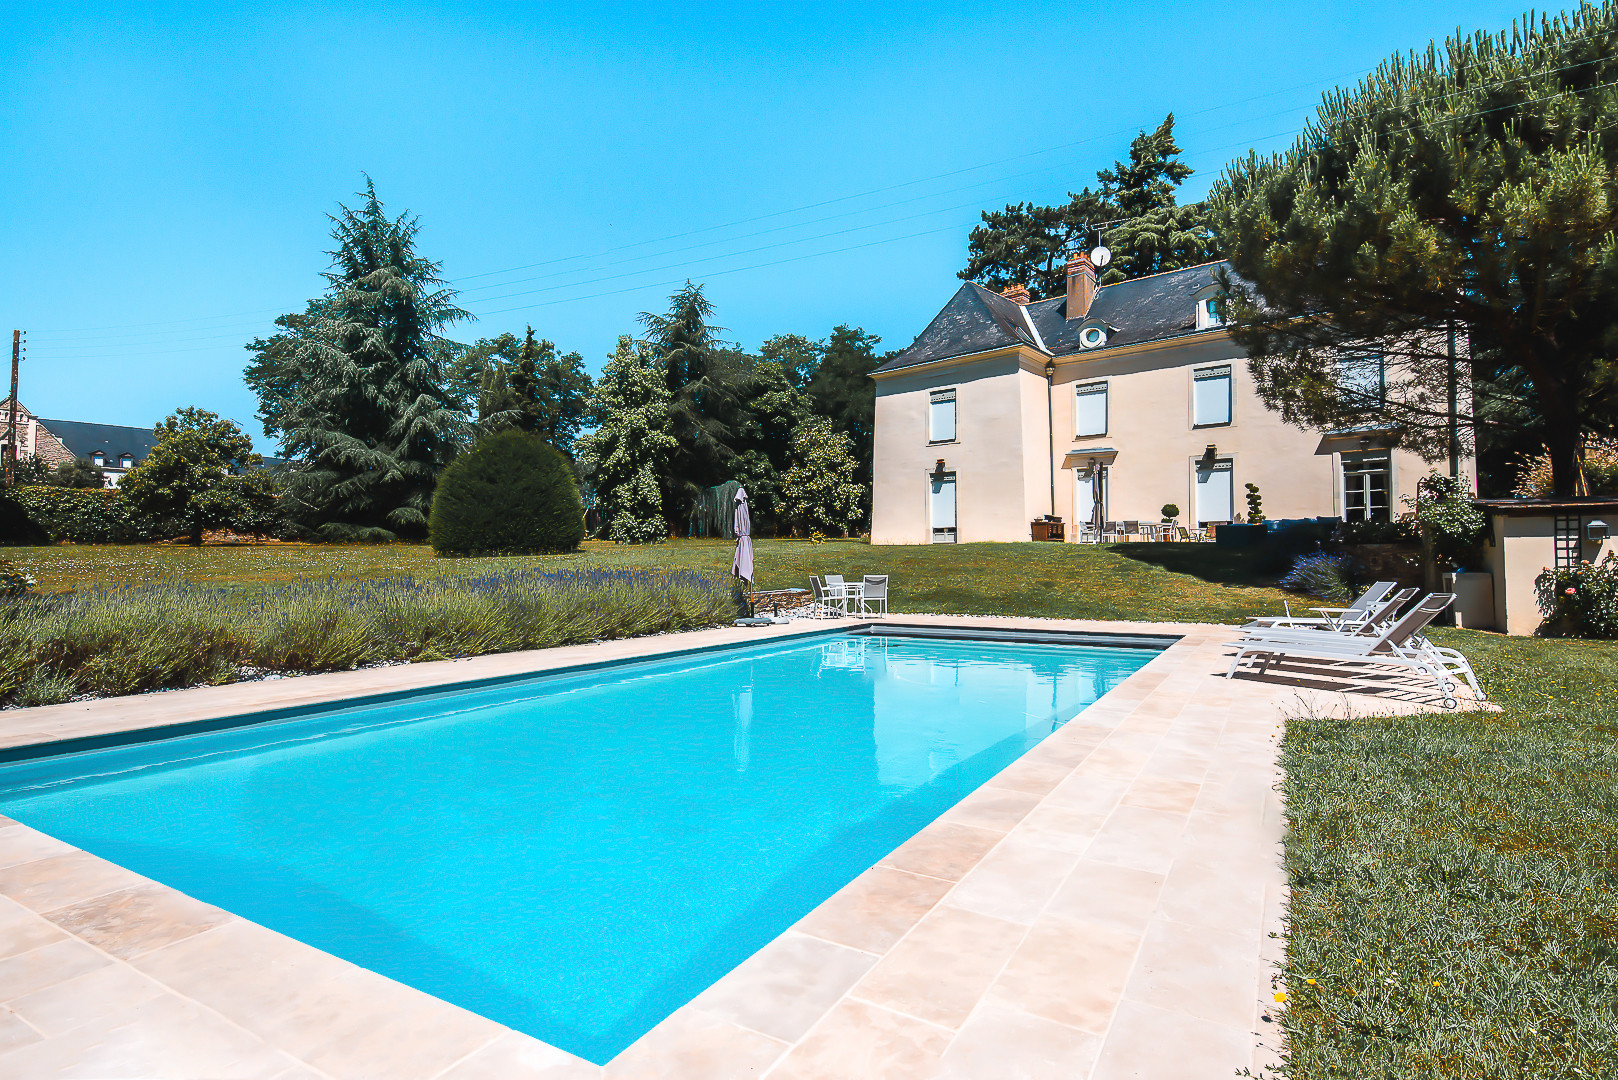 John photography Photographie immobiliere Angers